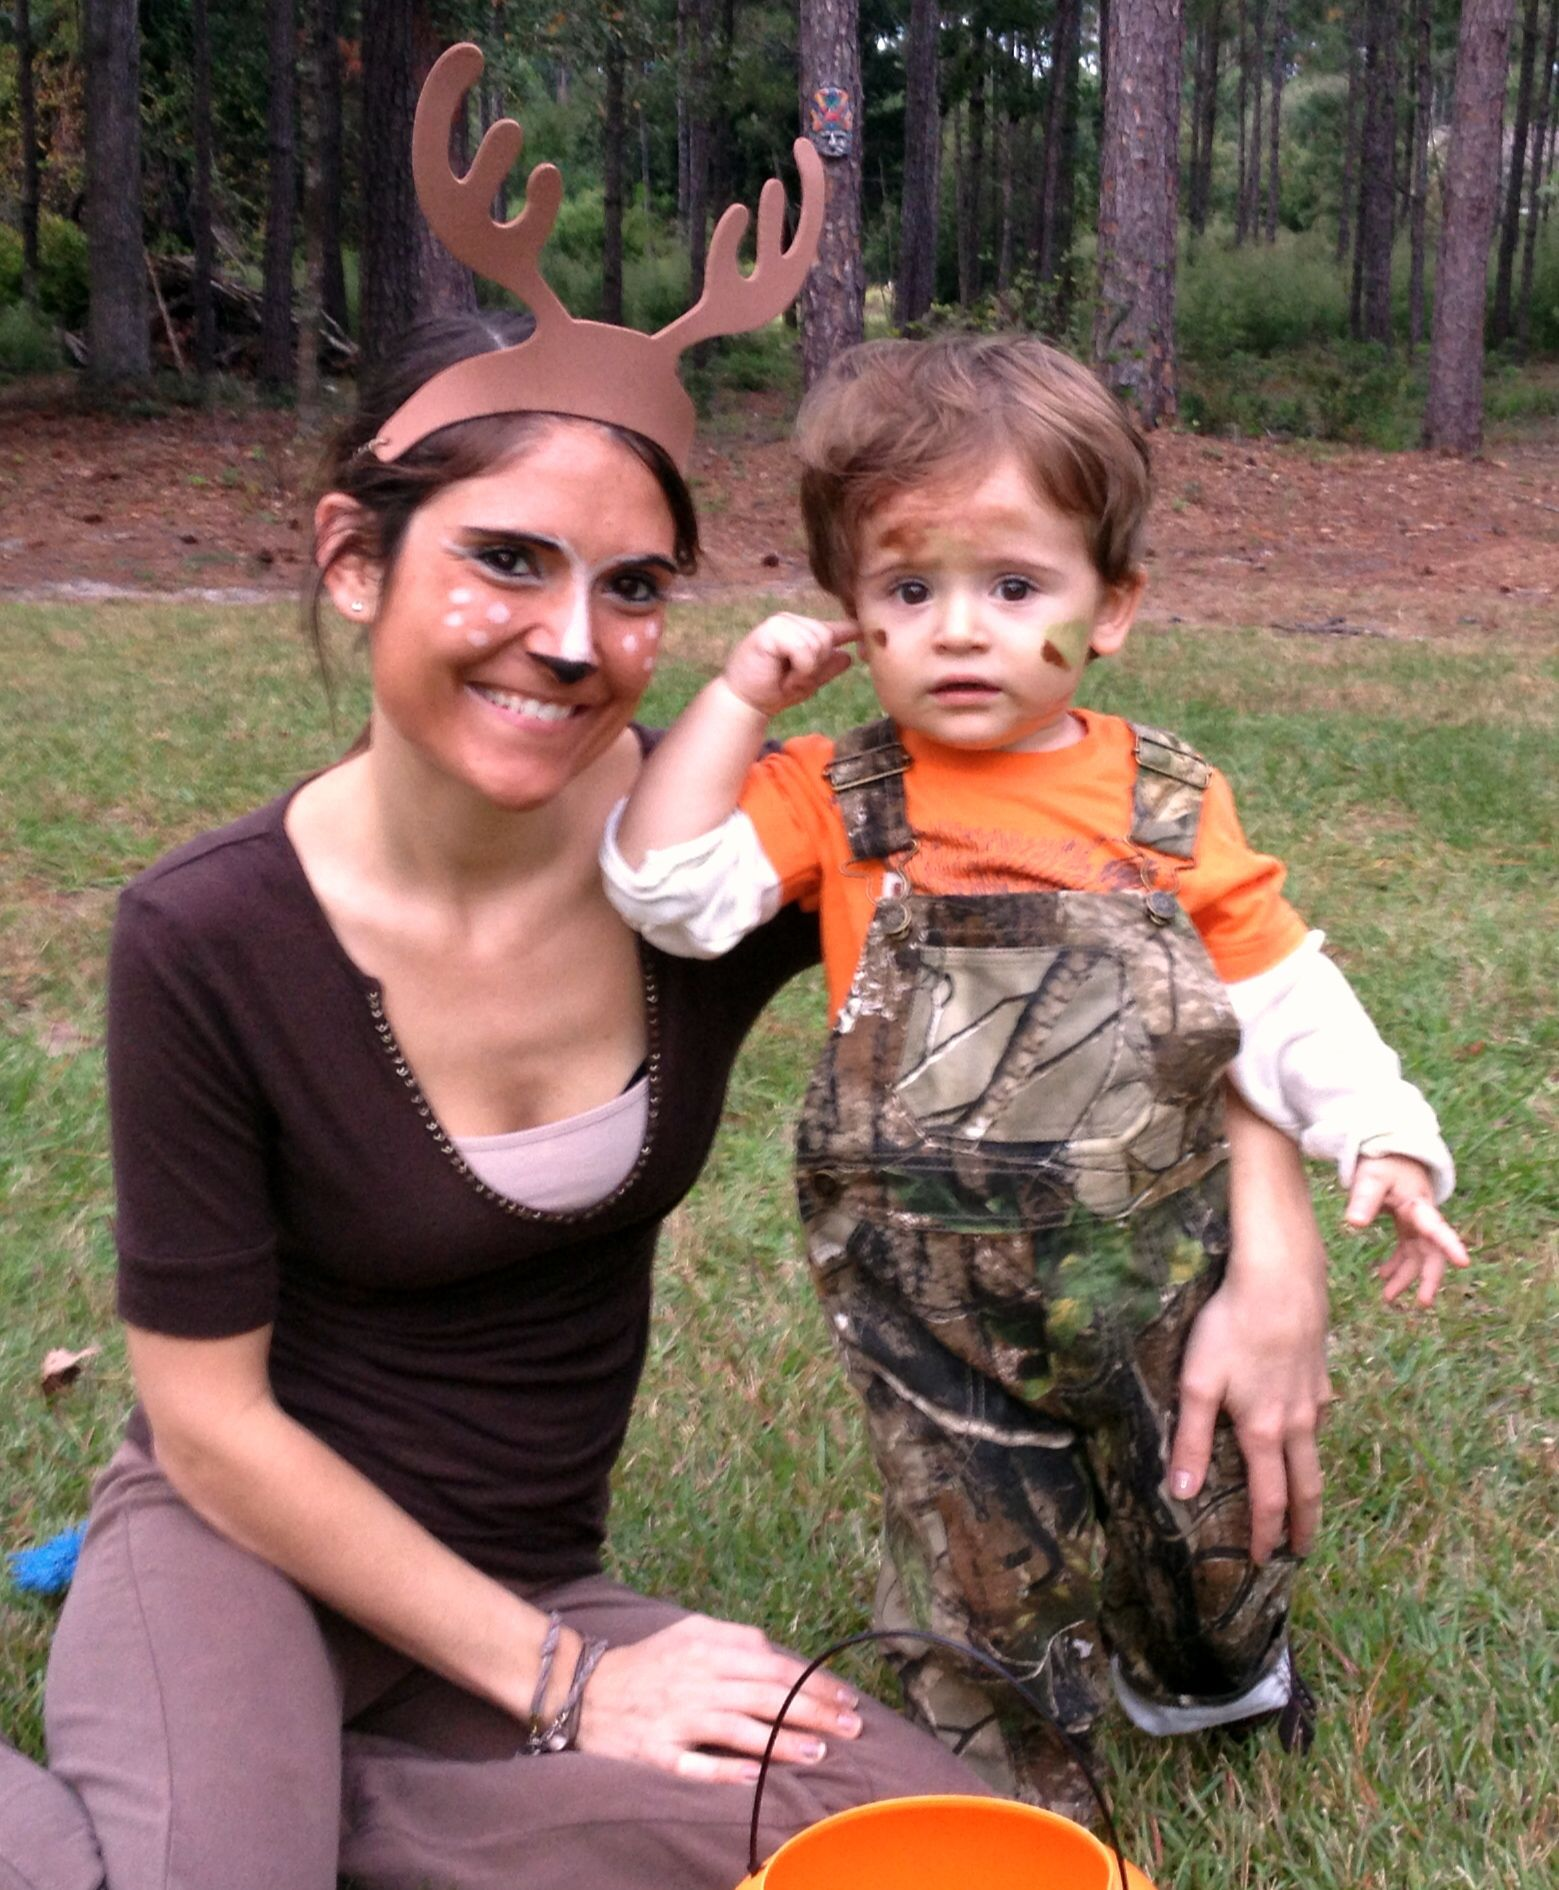 Hunter and deer Halloween costume for mom and toddler | My ...